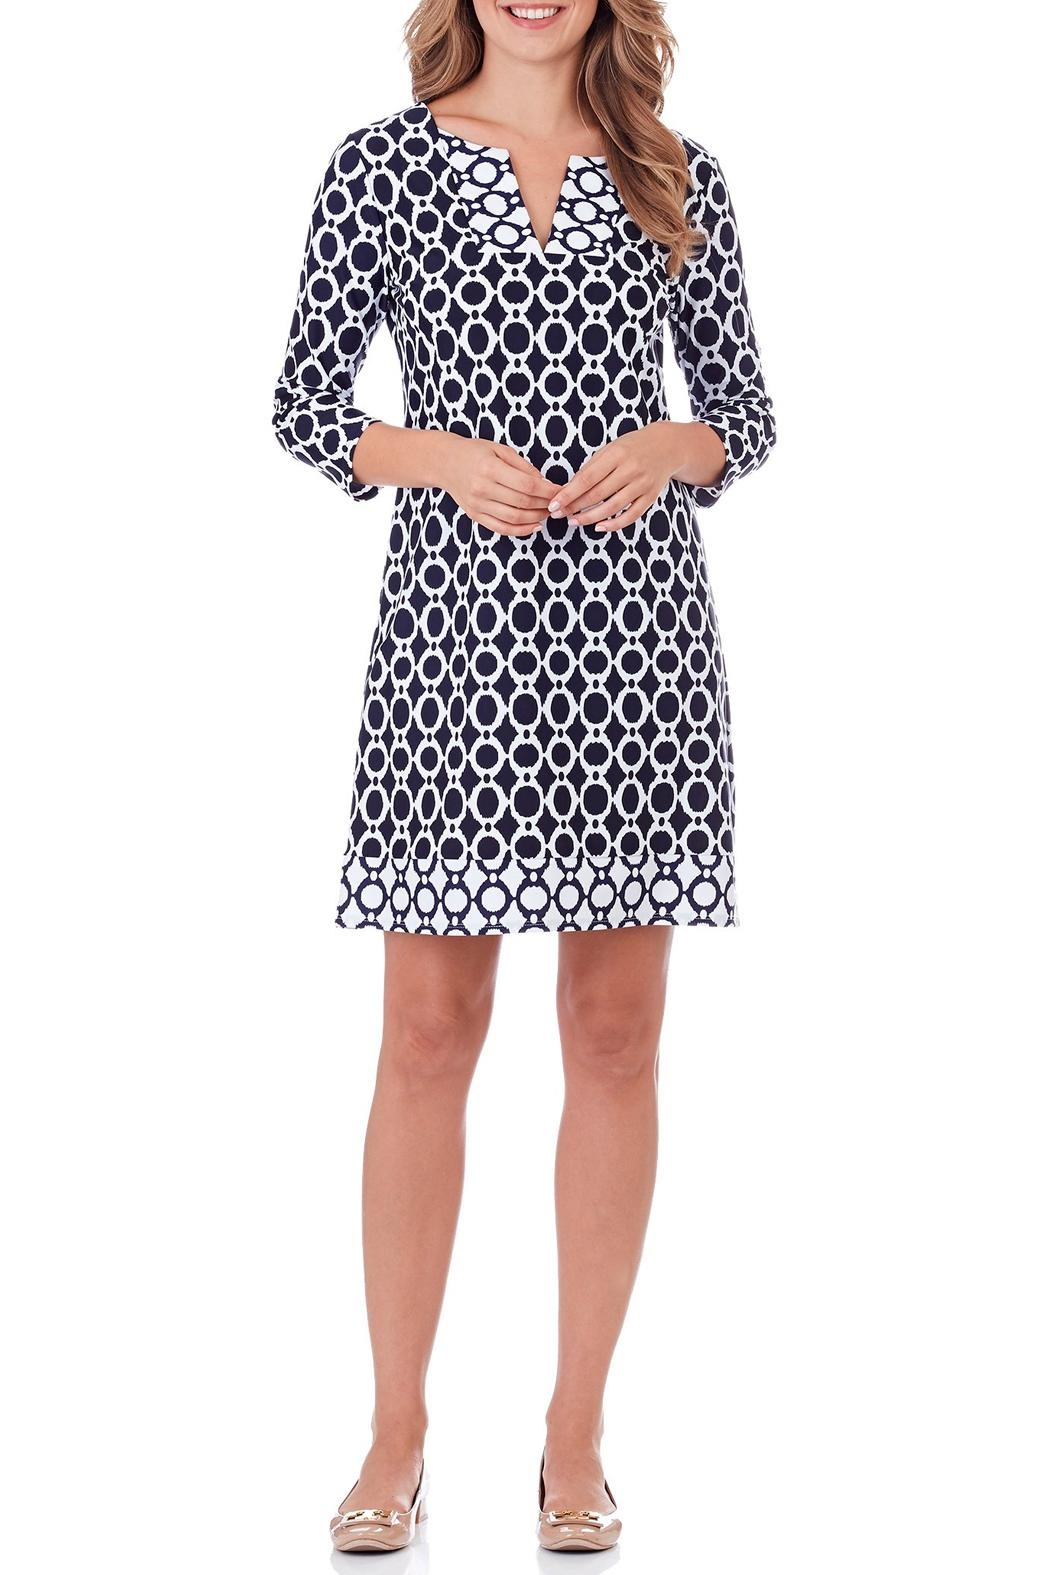 Jude Connally Cara Shift Dress - Main Image